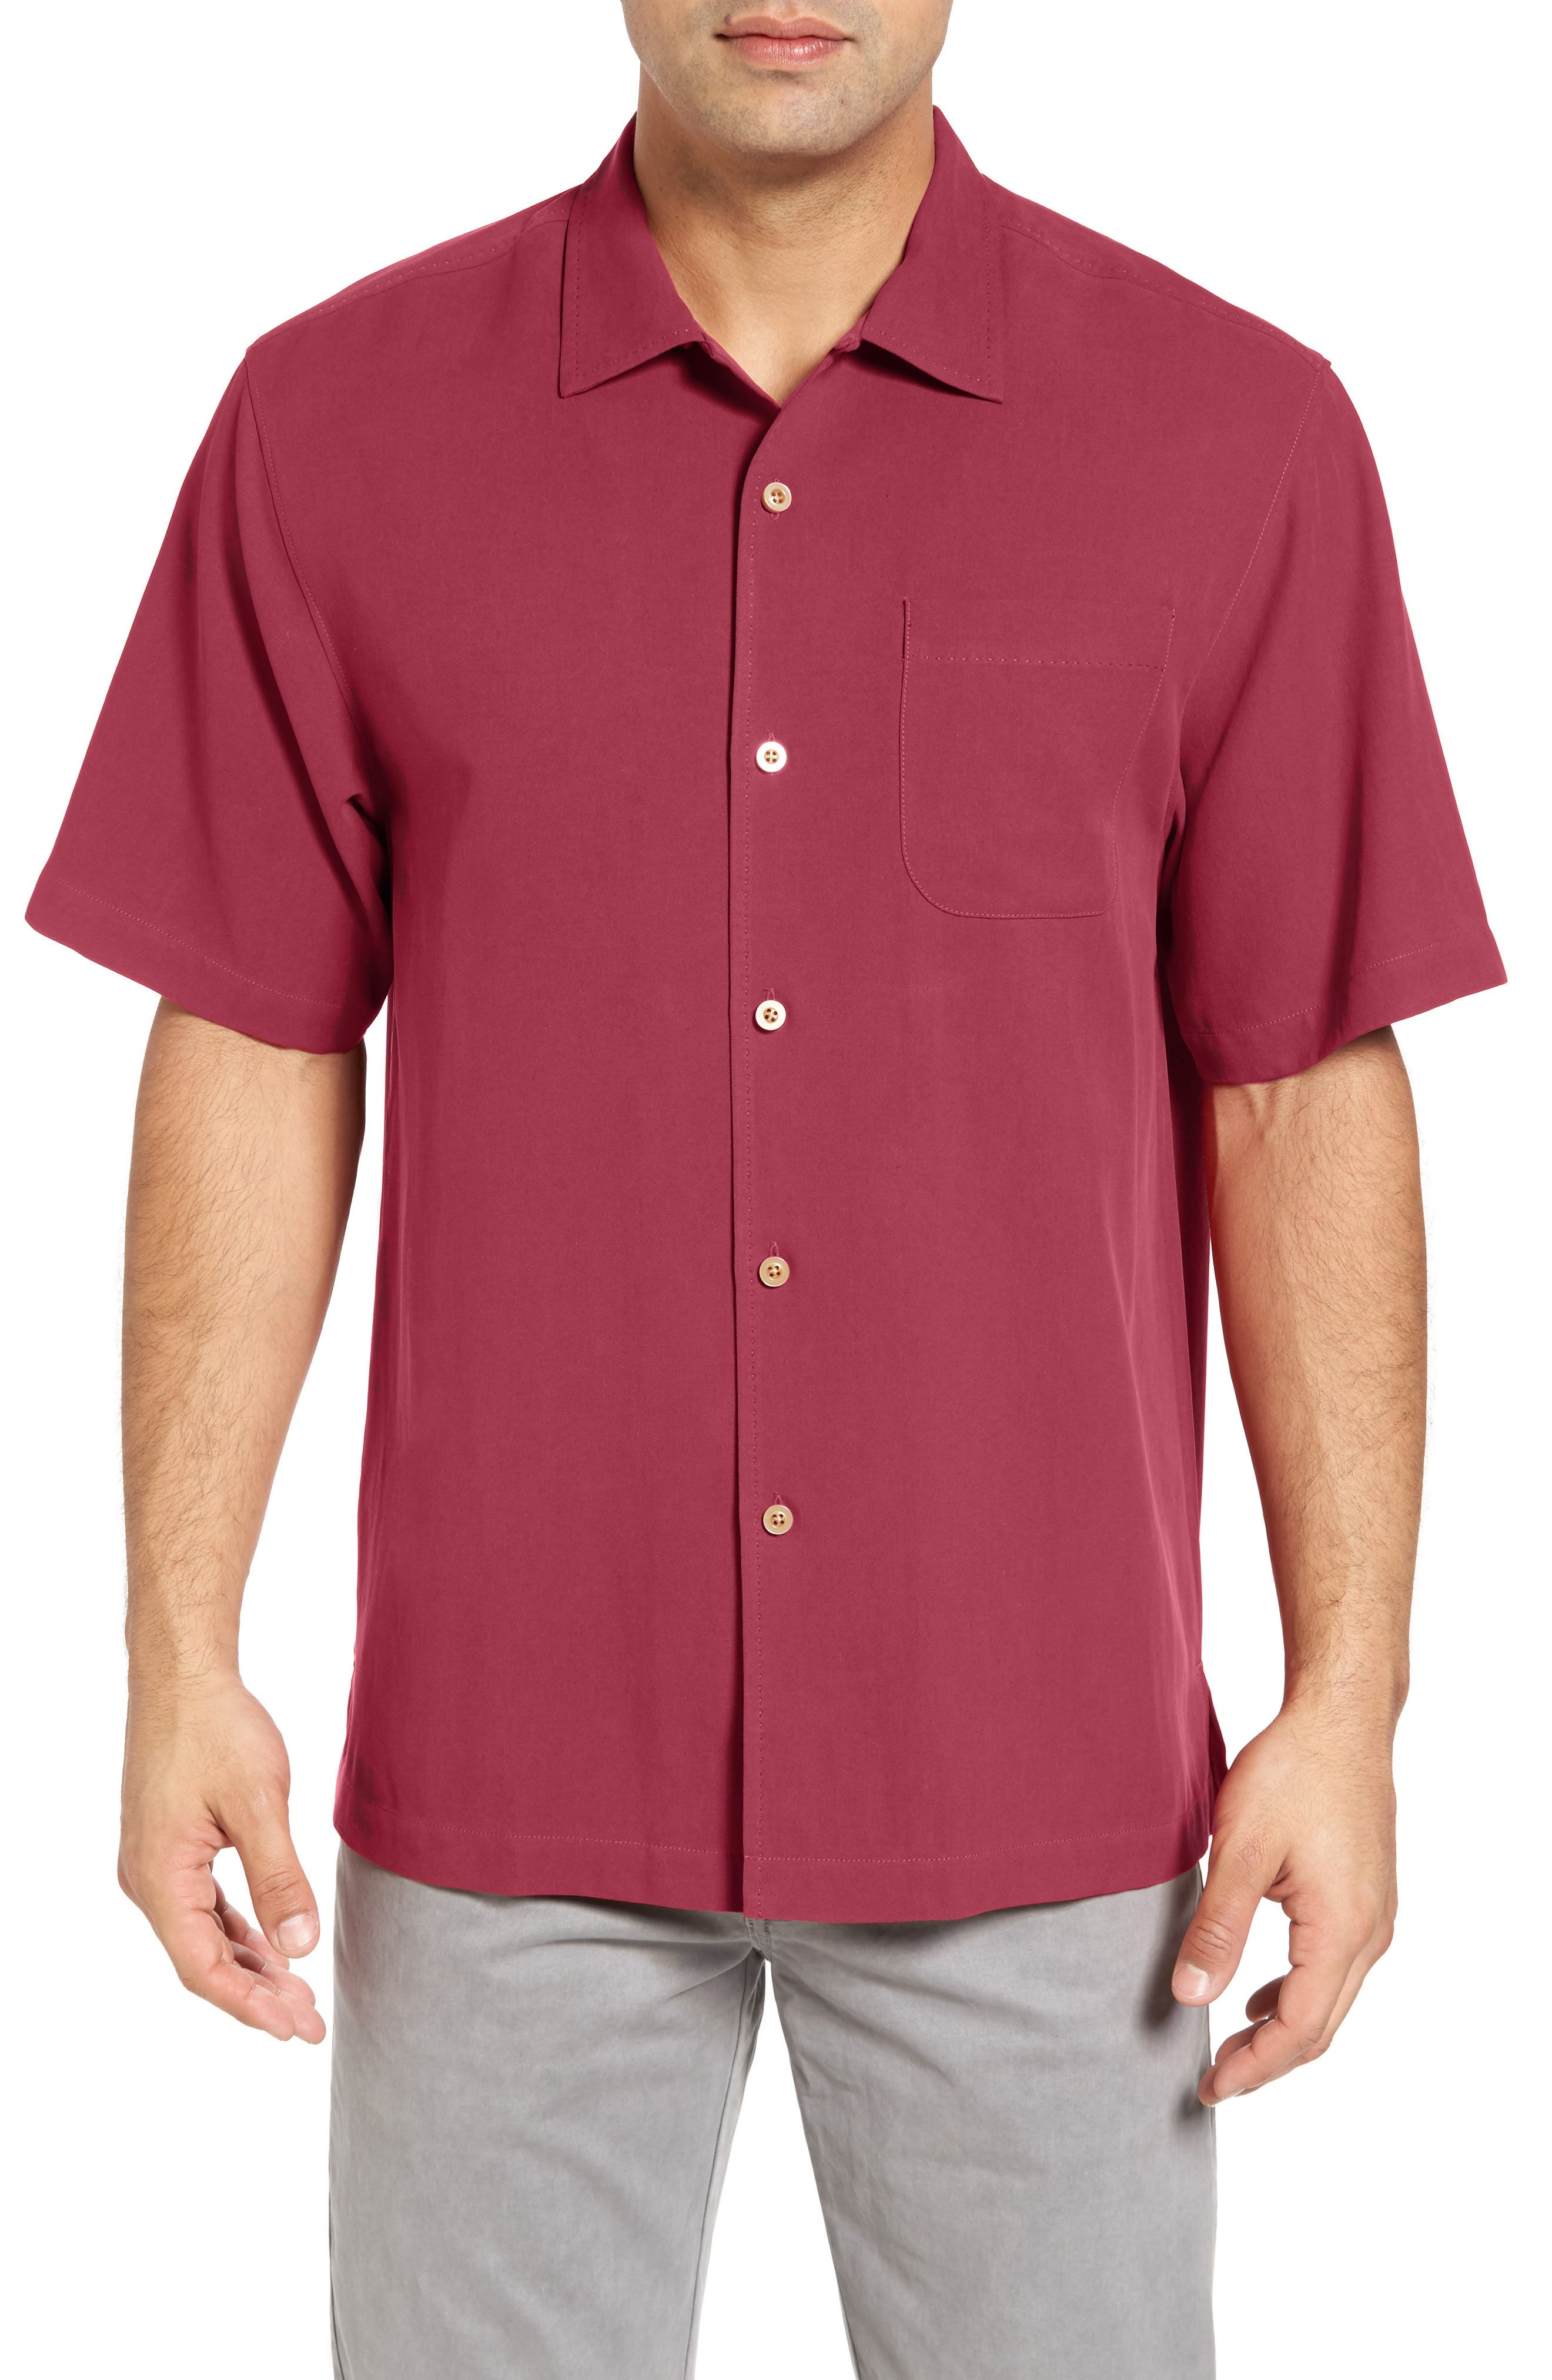 Shirts for Men, Men's Tommy Bahama Red Shirts | Nordstrom